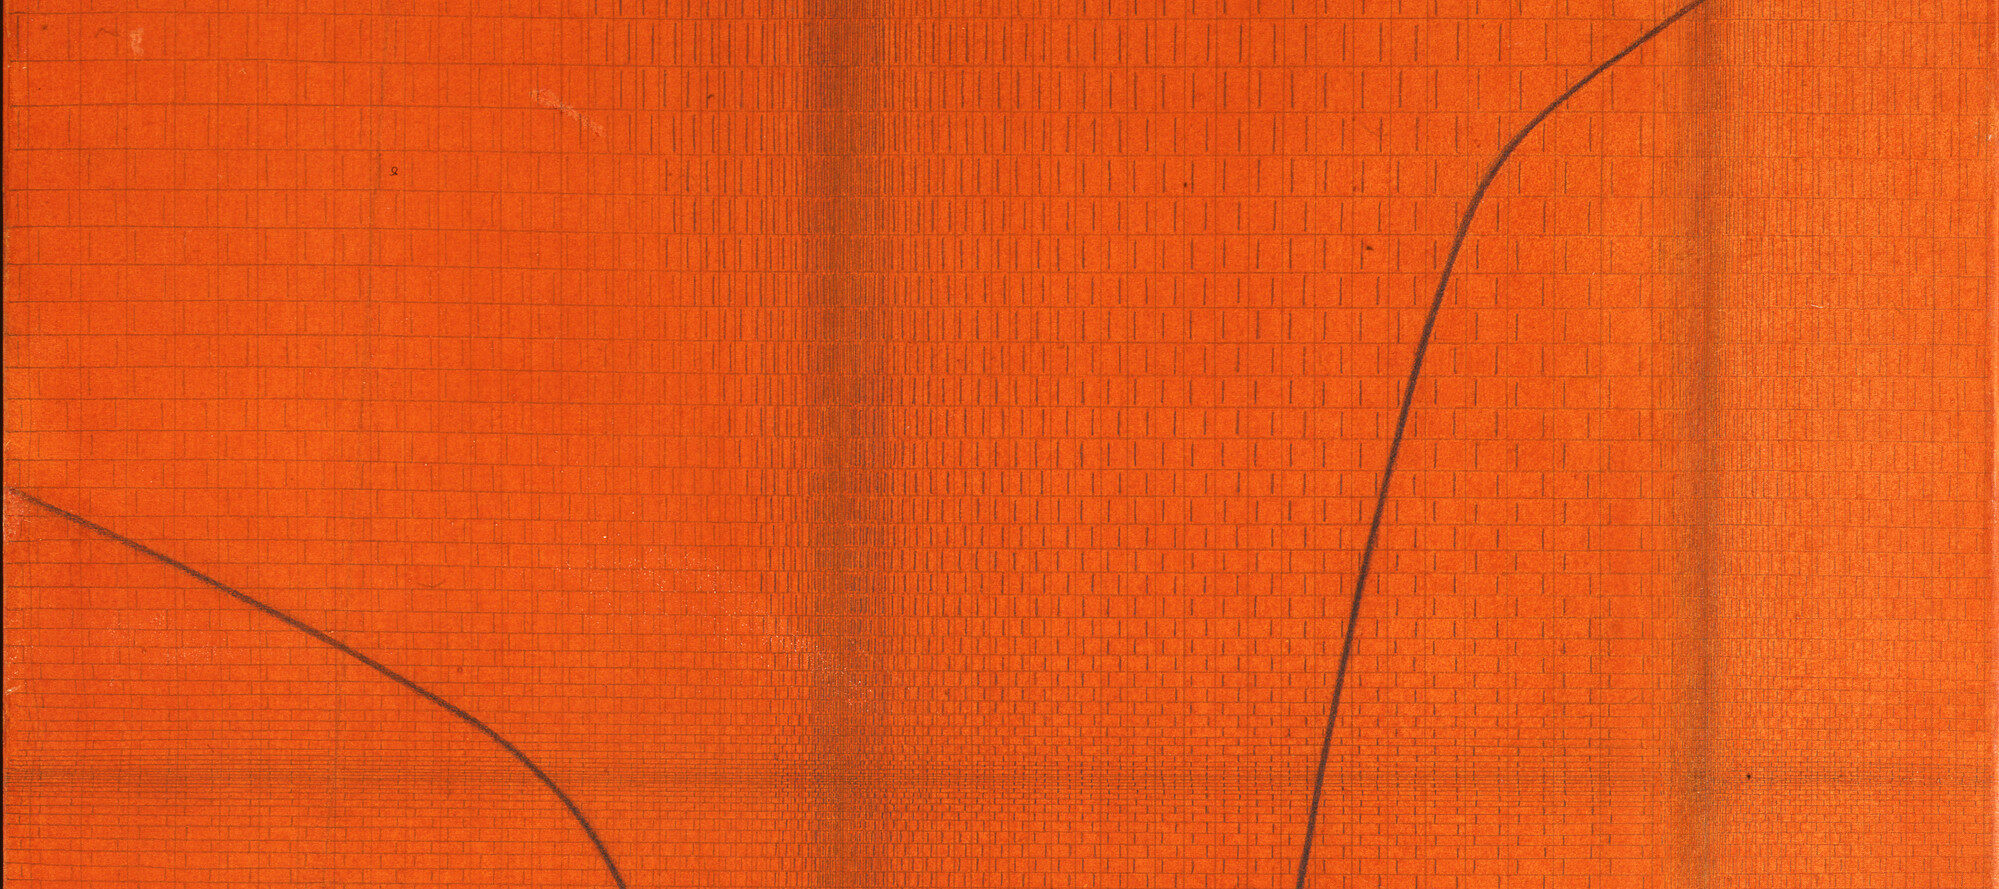 Bold orangey-red paint and pencil artwork with faint pattern like snakeskin. Two thin black lines curves toward the middle of the work from the right and left sides.